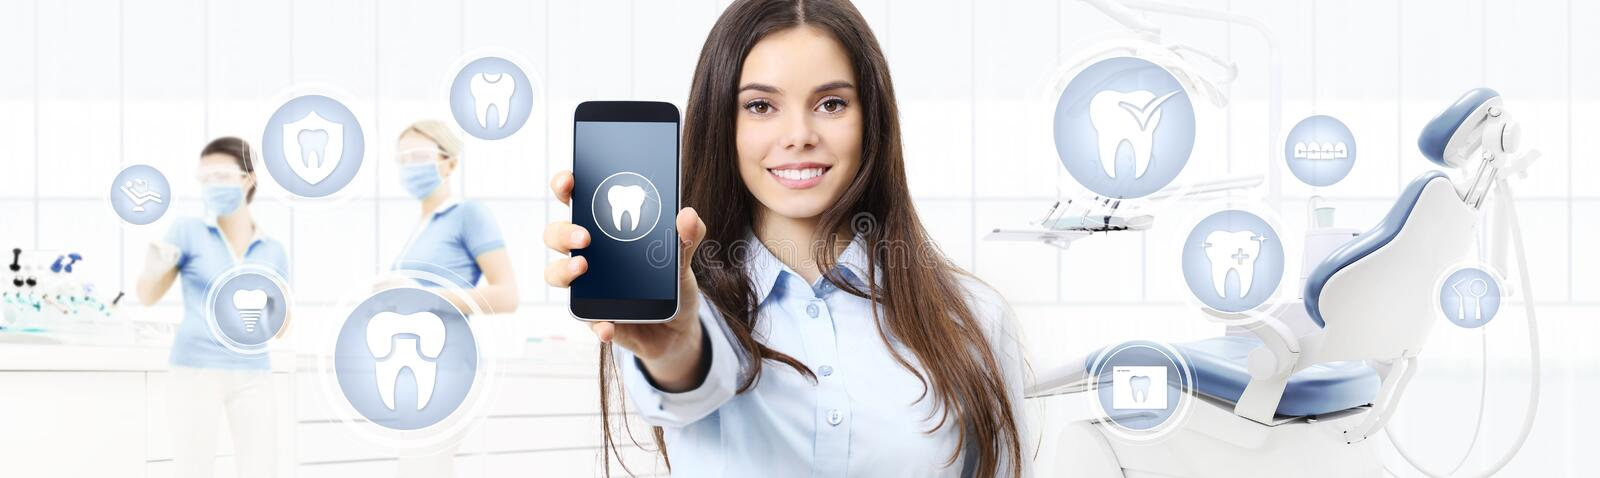 Dental care smiling woman showing smart phone, teeth icons and s royalty free illustration